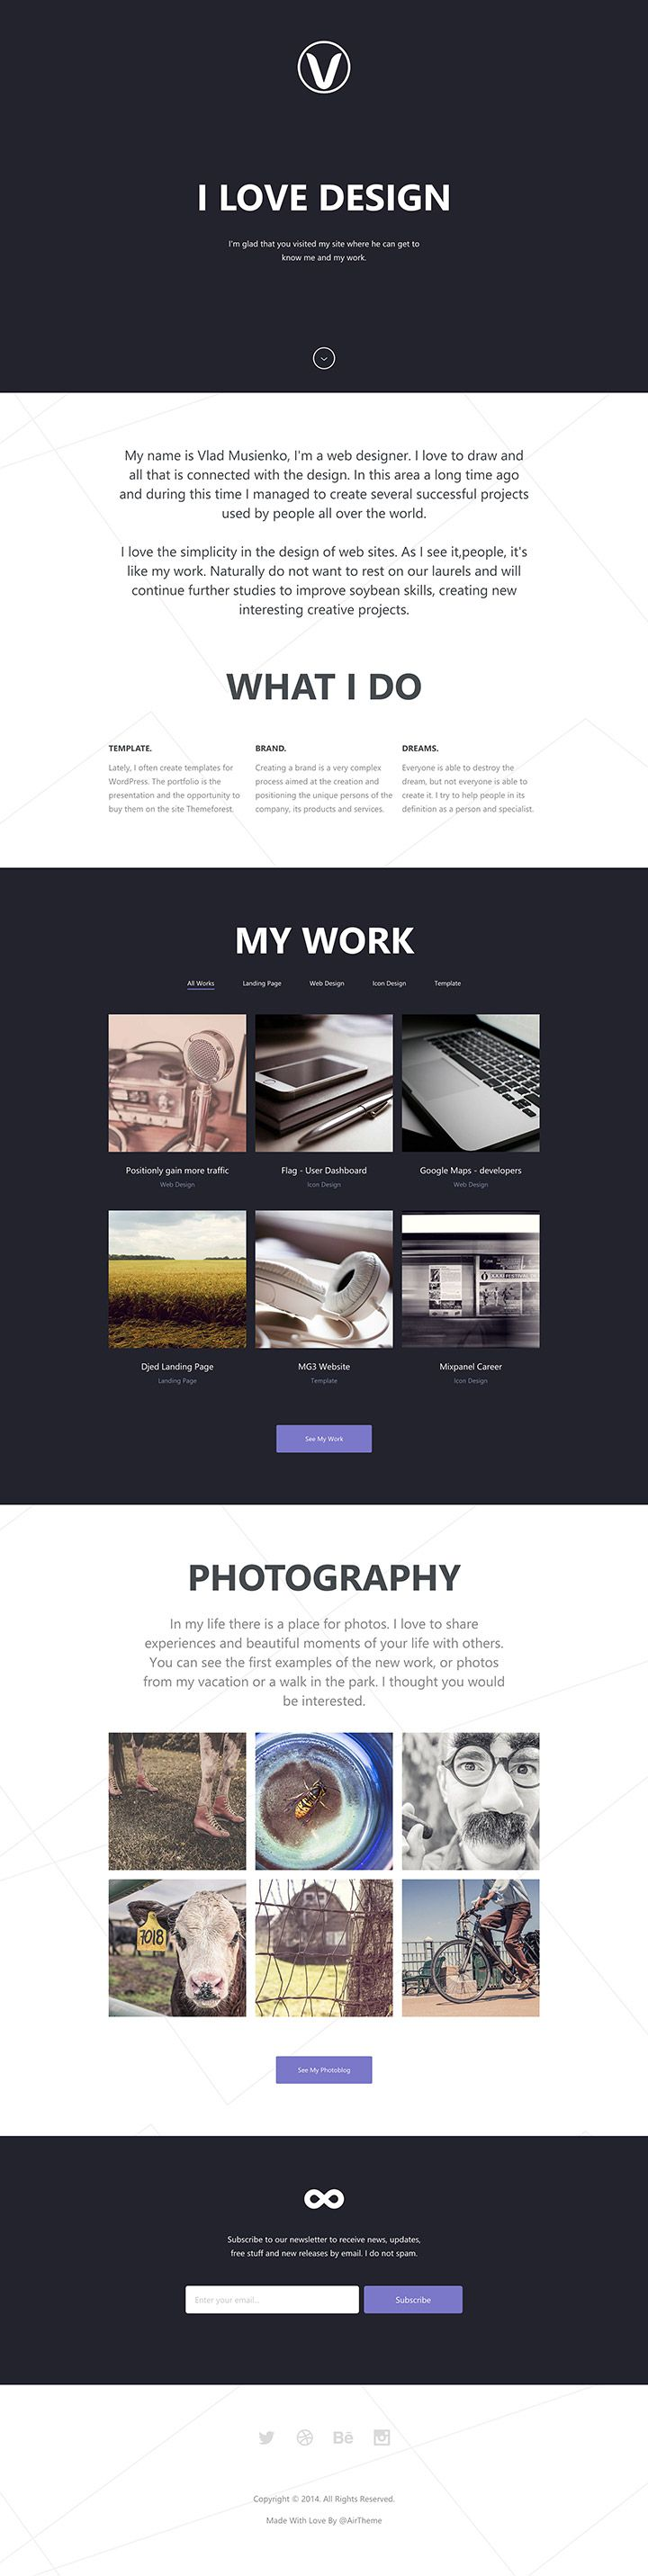 Lithium is a free HTML5 Responsive one page template built using CoffeeScript, SCSS and Grunt by Vadim Goncharov, a web designer and develop...